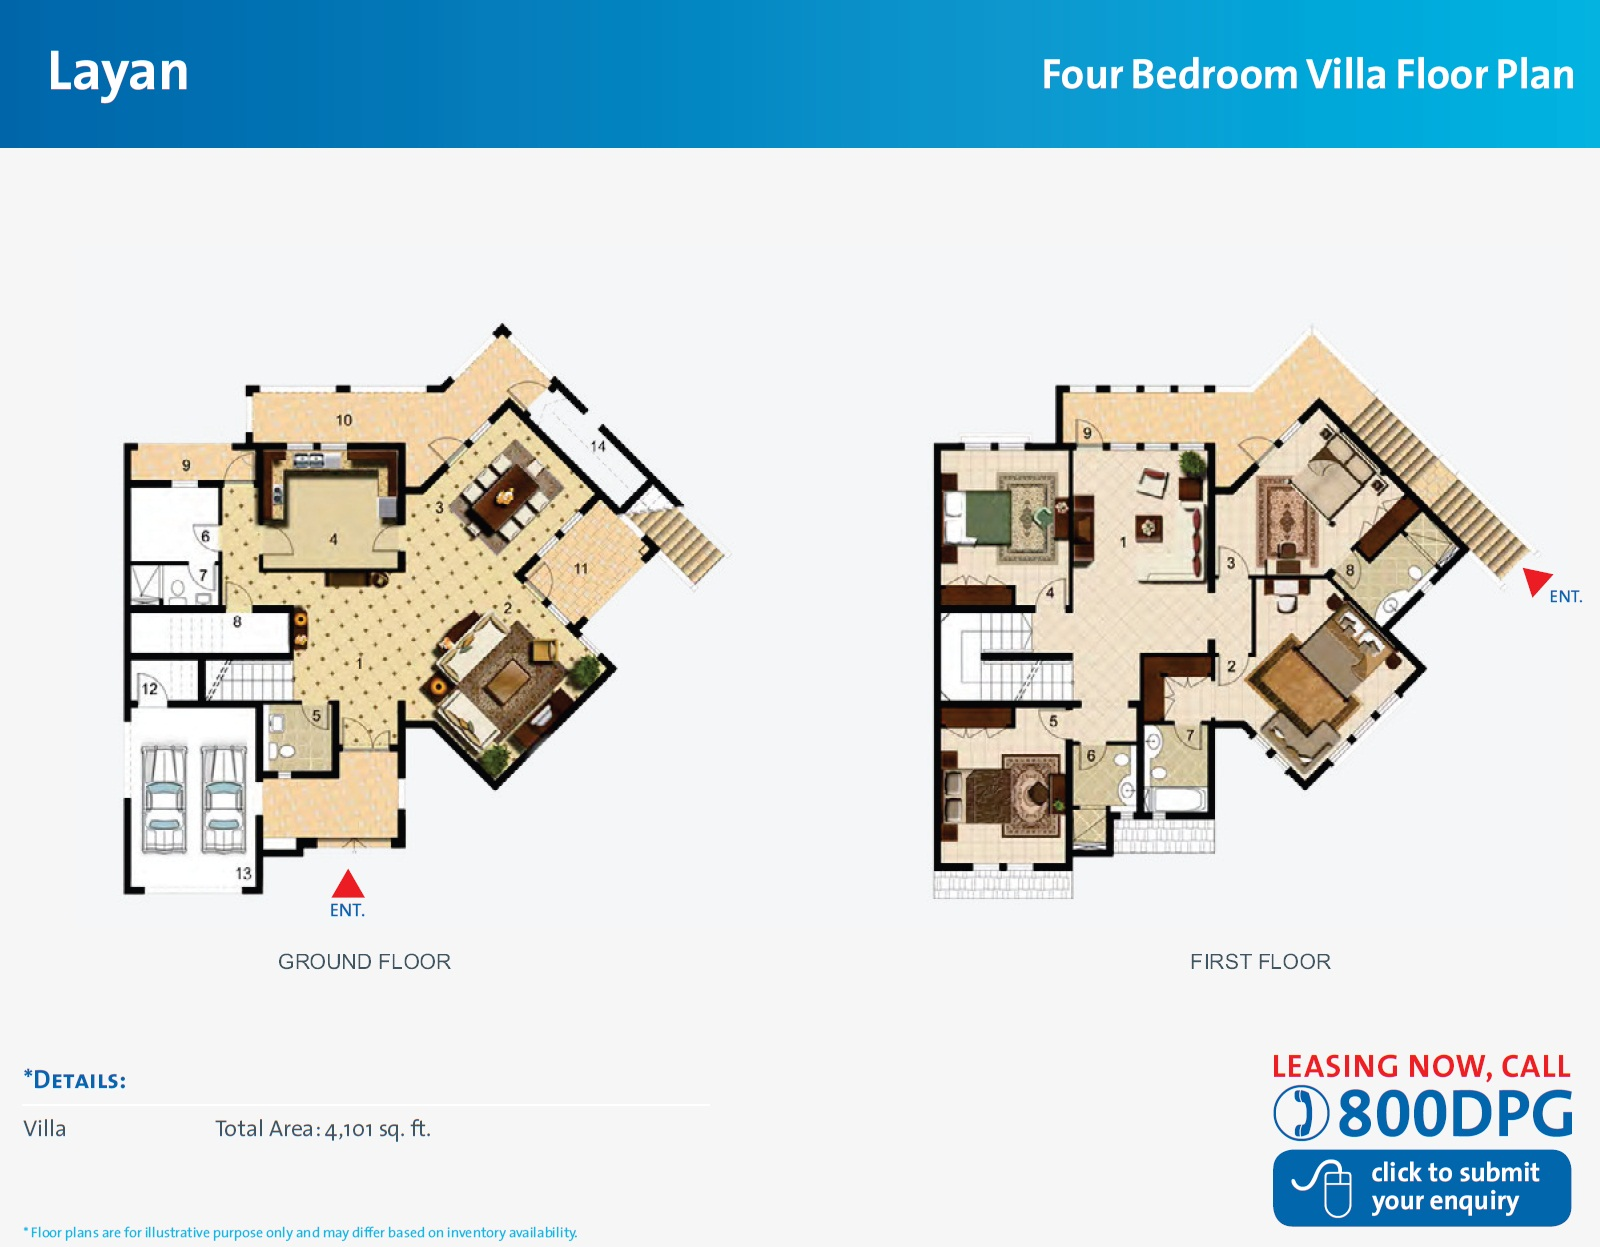 Dubai land sports city dubai floor plans for Villa floor plans